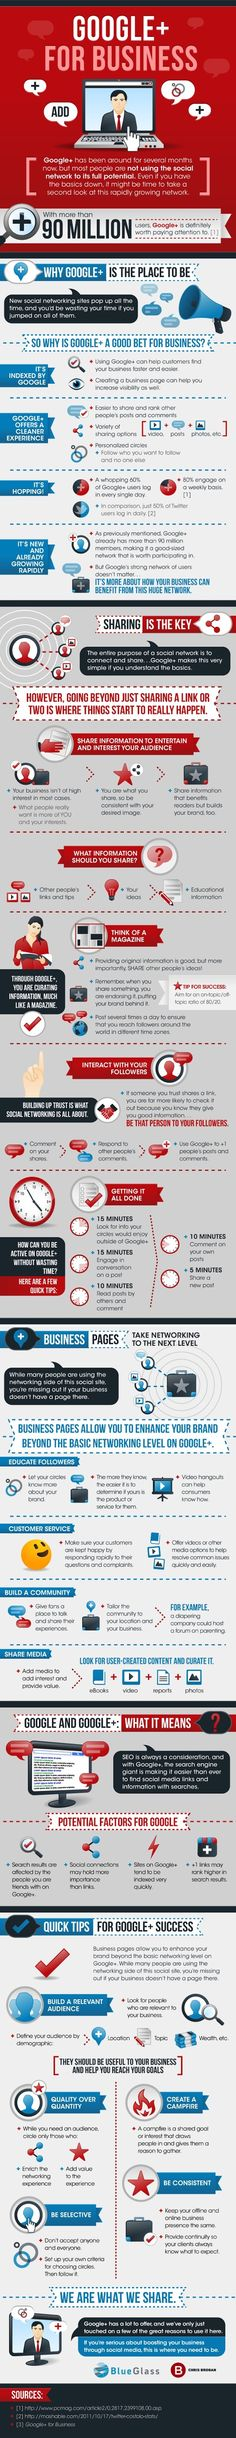 Google Plus for Business   Social Media Infographic www.socialmediamamma.com